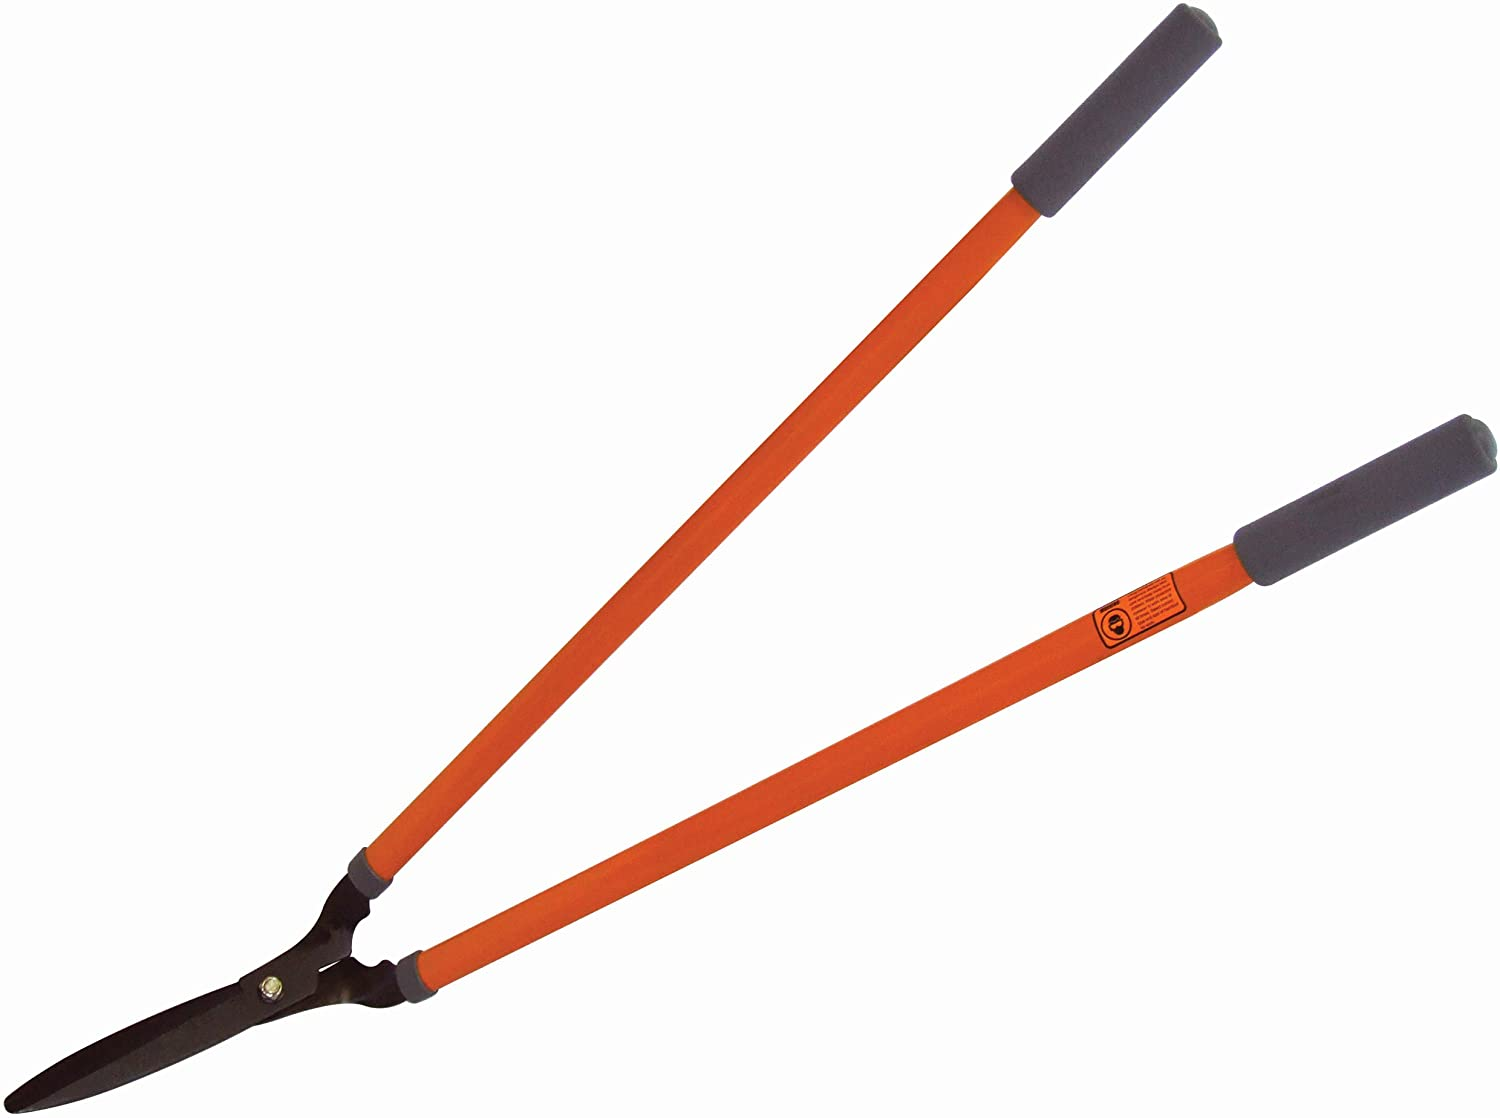 Flostream Ltd U2865 Border Shears Front Cutting, Multi-Colour, 104x34x22 cm